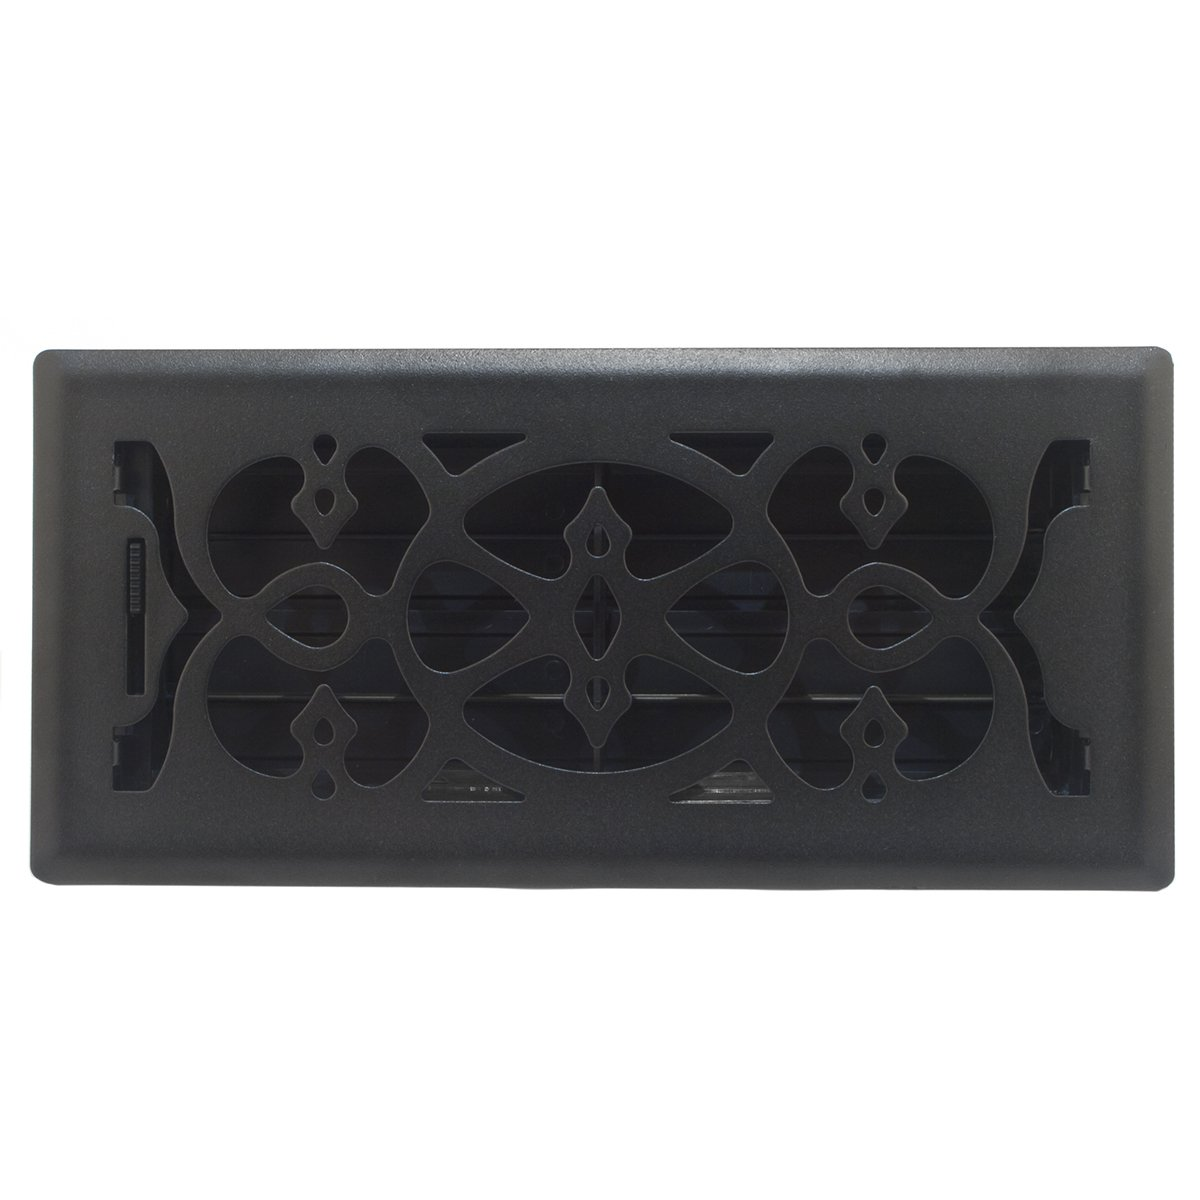 2-Inch x 12-Inch Accord AMFRBLV212 Floor Register with Victorian Design Matte Black Duct Opening Measurements